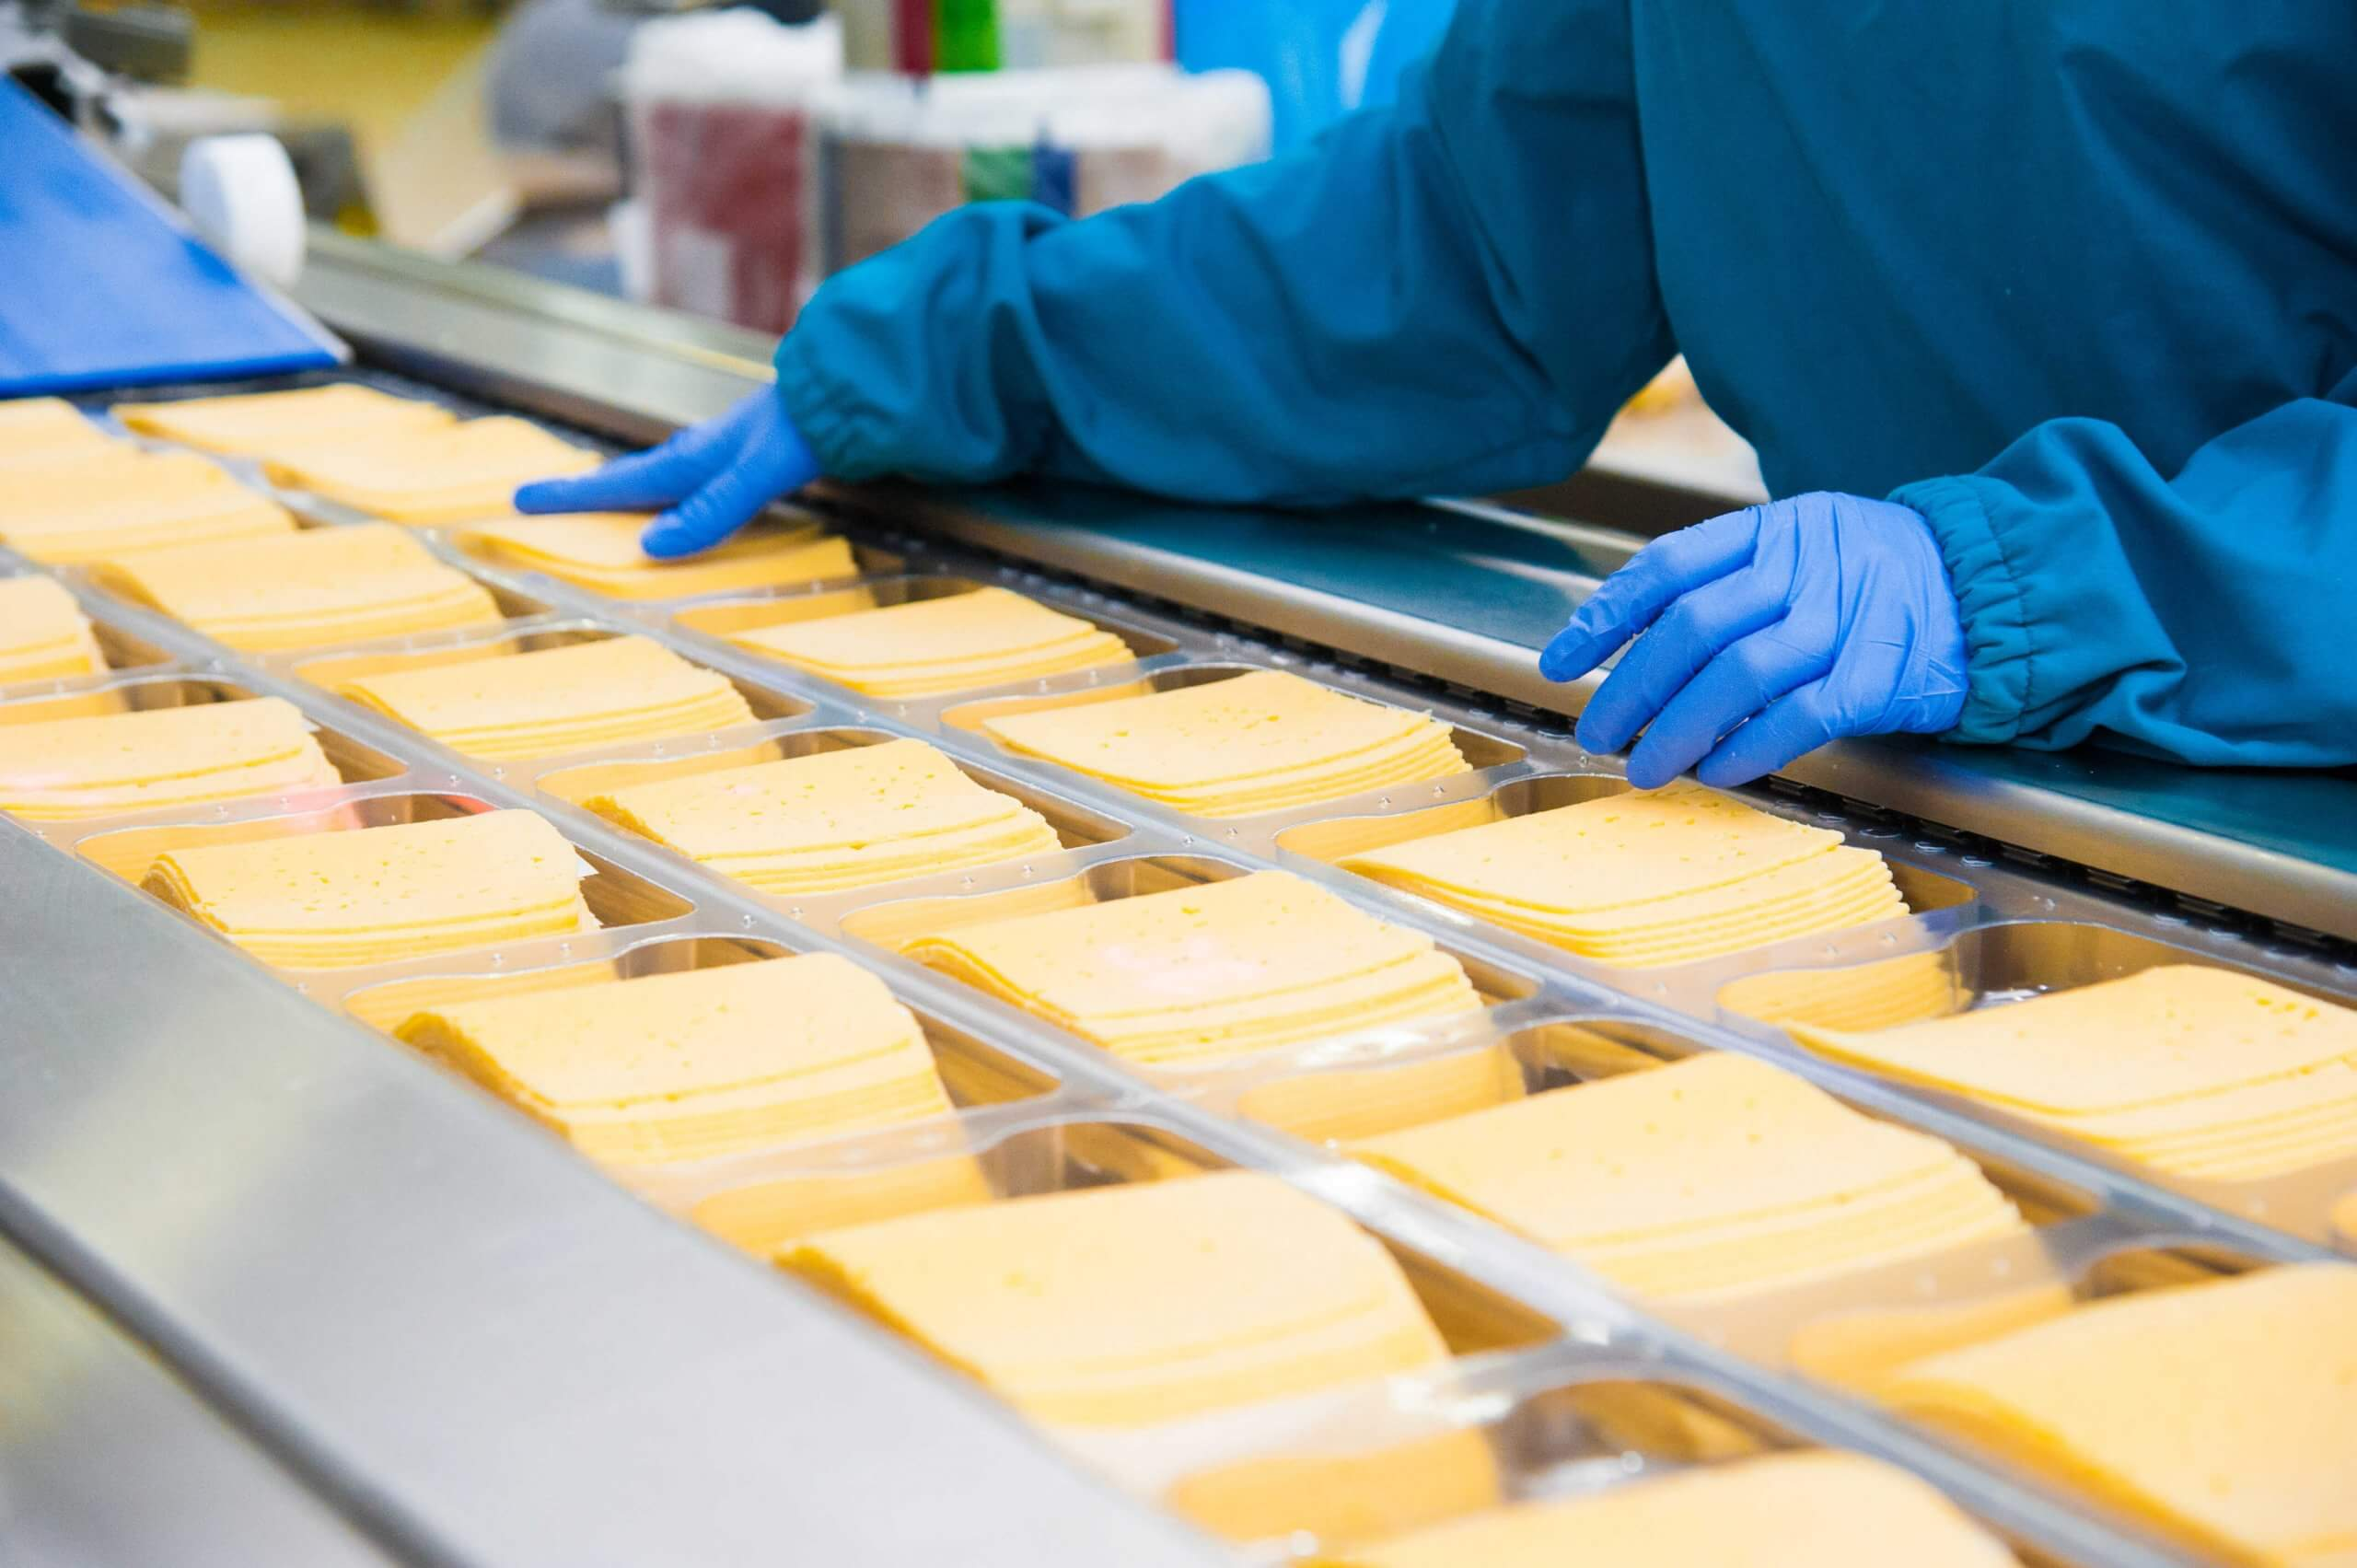 Cheese food processing facility